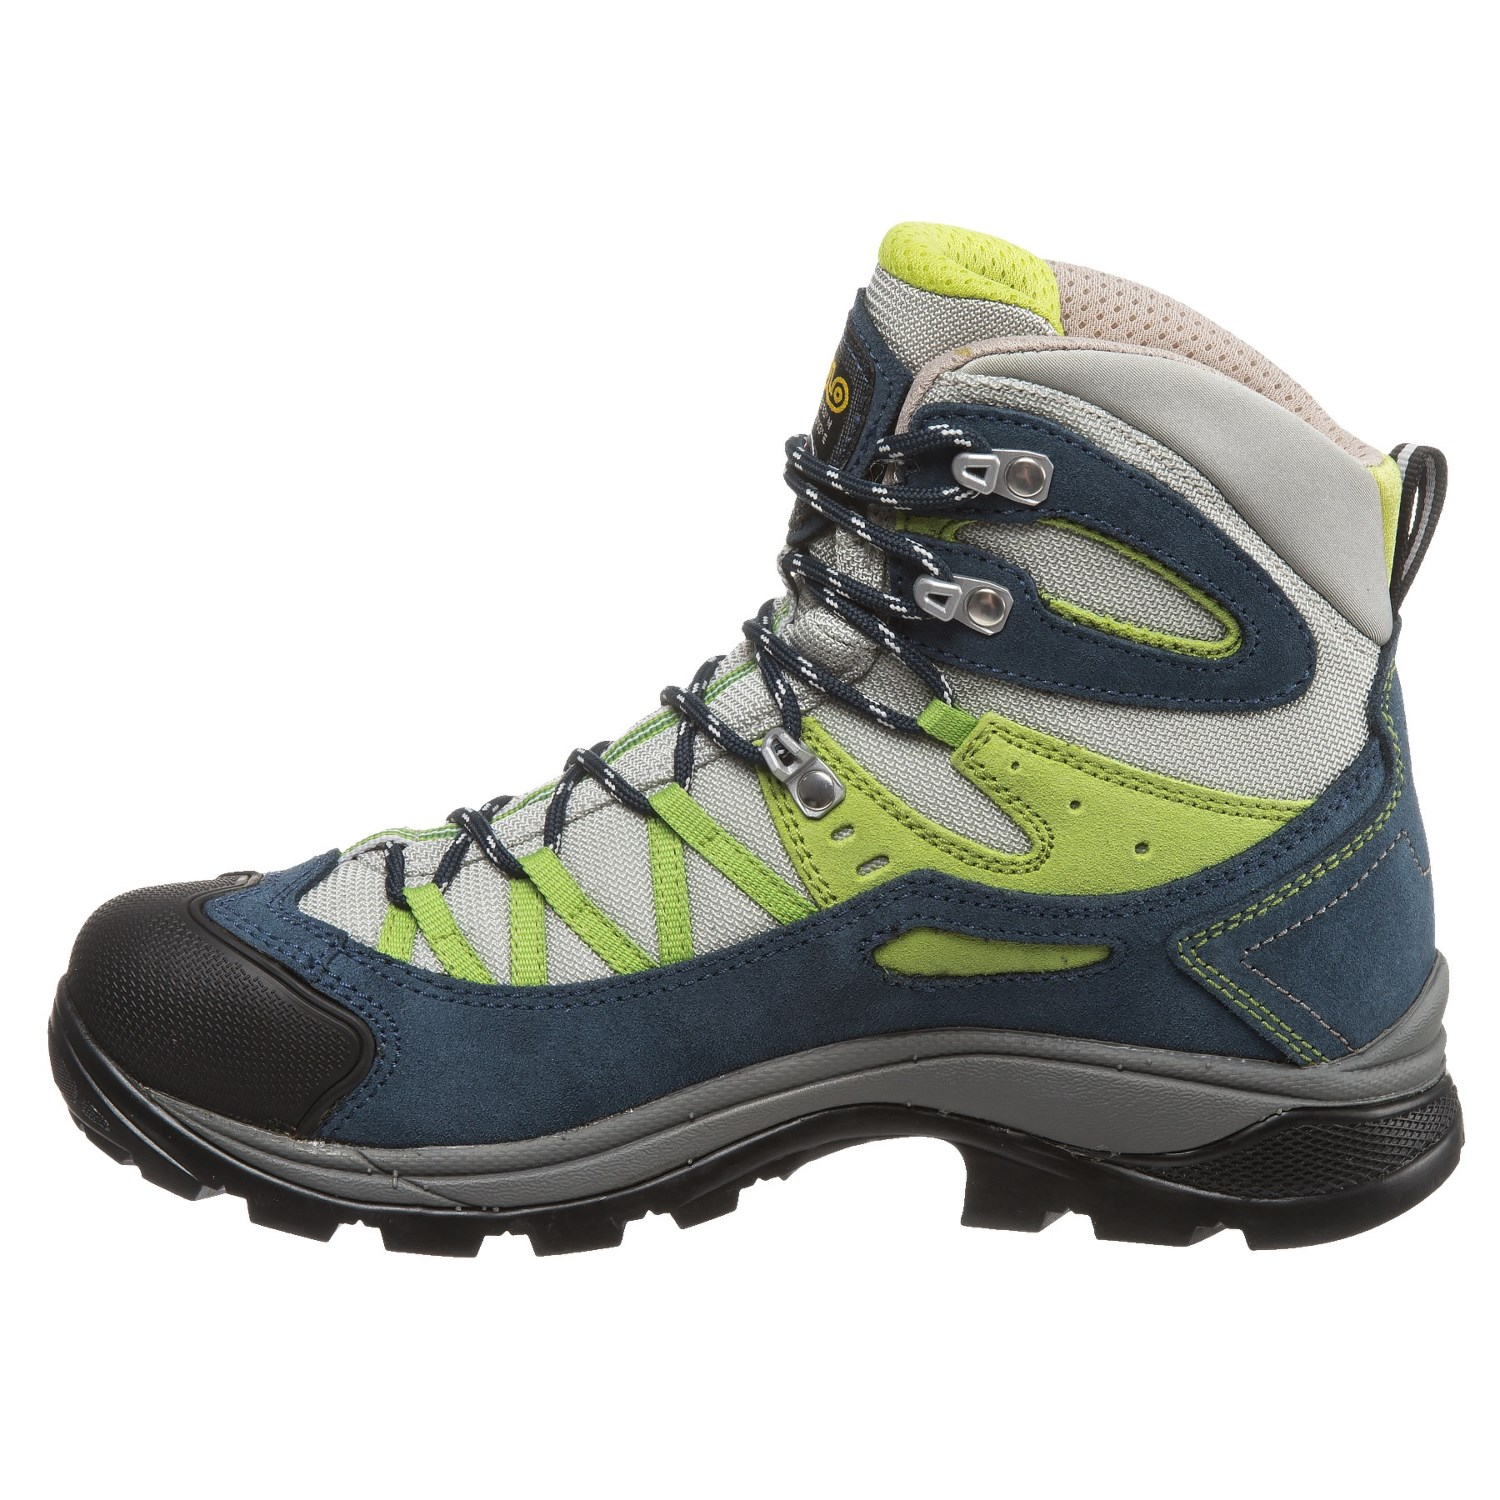 Asolo Swing Gv Gore Tex 174 Hiking Boots For Women Save 50